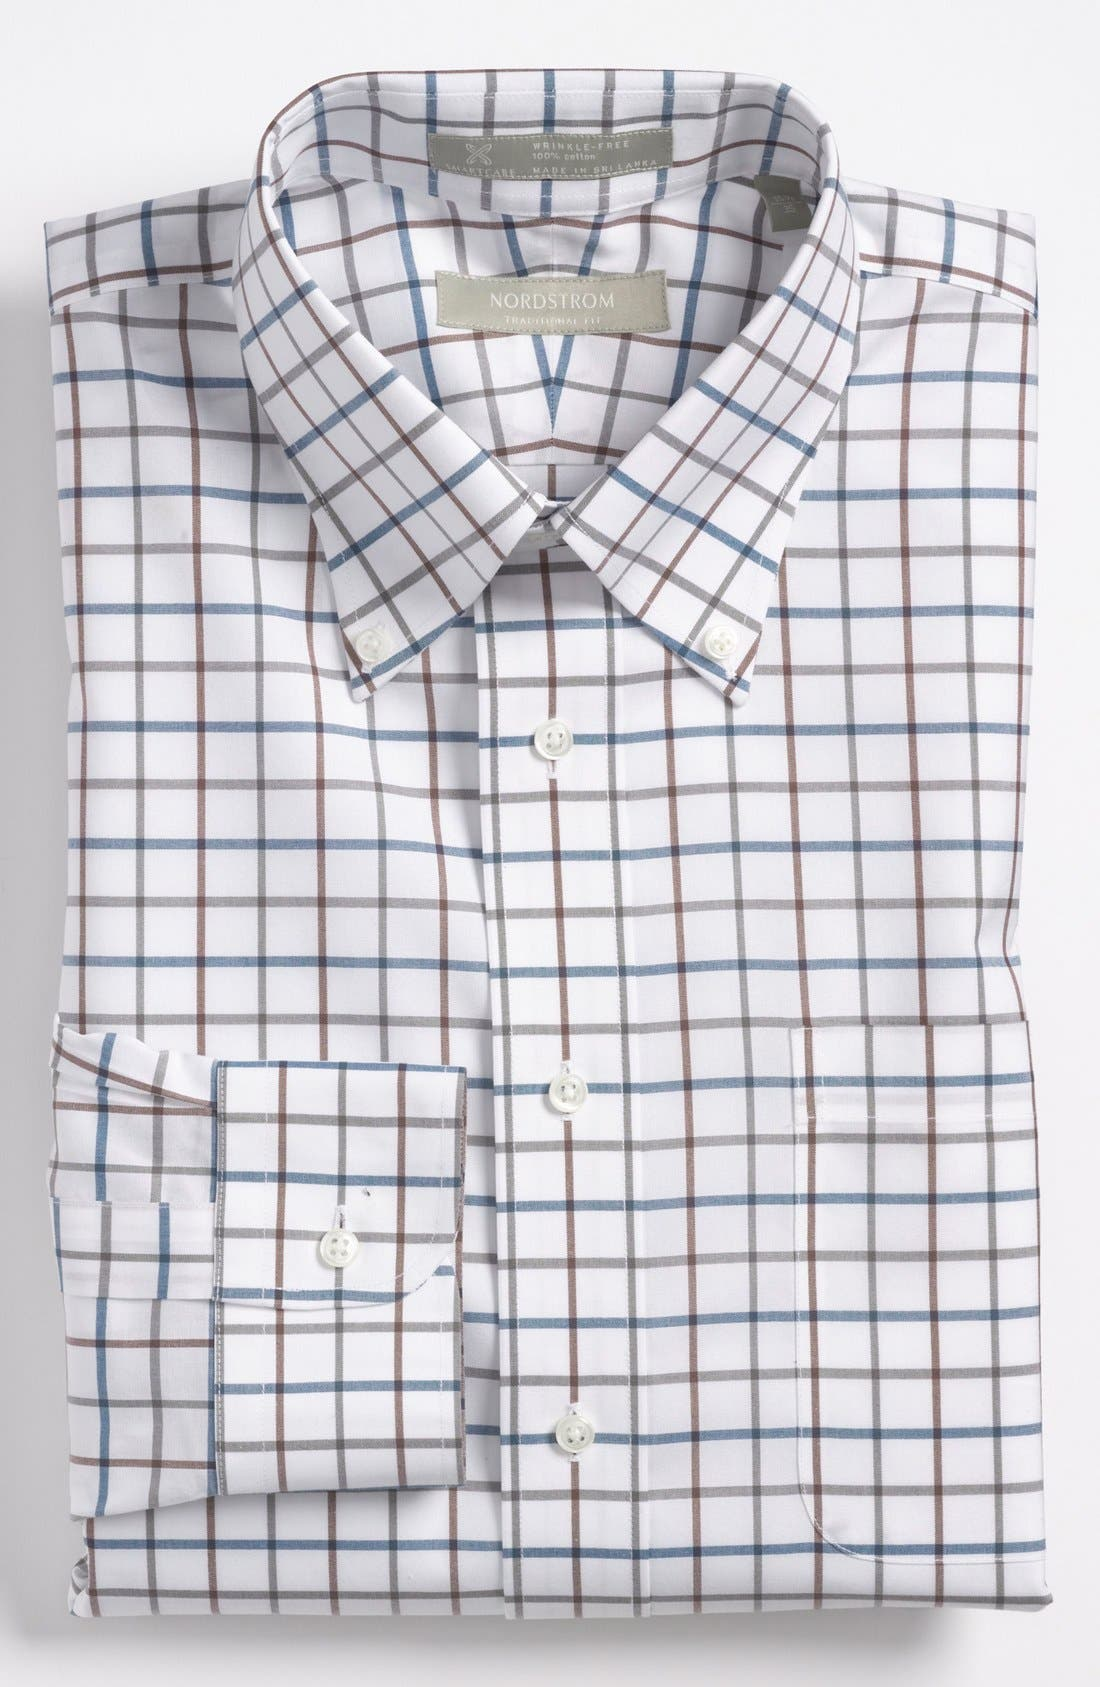 Nordstrom Smartcare<sup>™</sup> Traditional Fit Dress Shirt, Main, color, 900